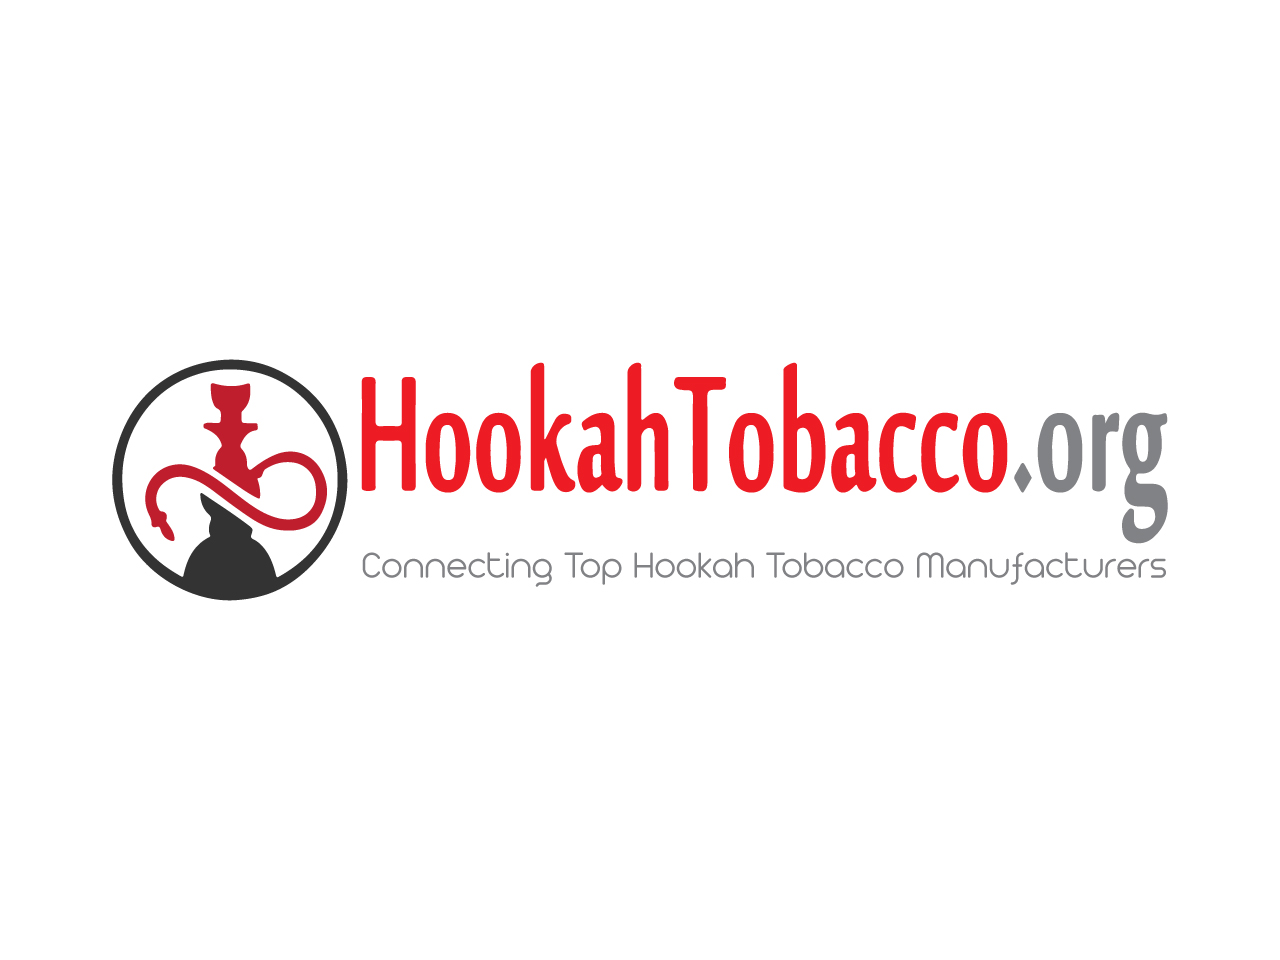 All About HookahTobacco.org and what they do